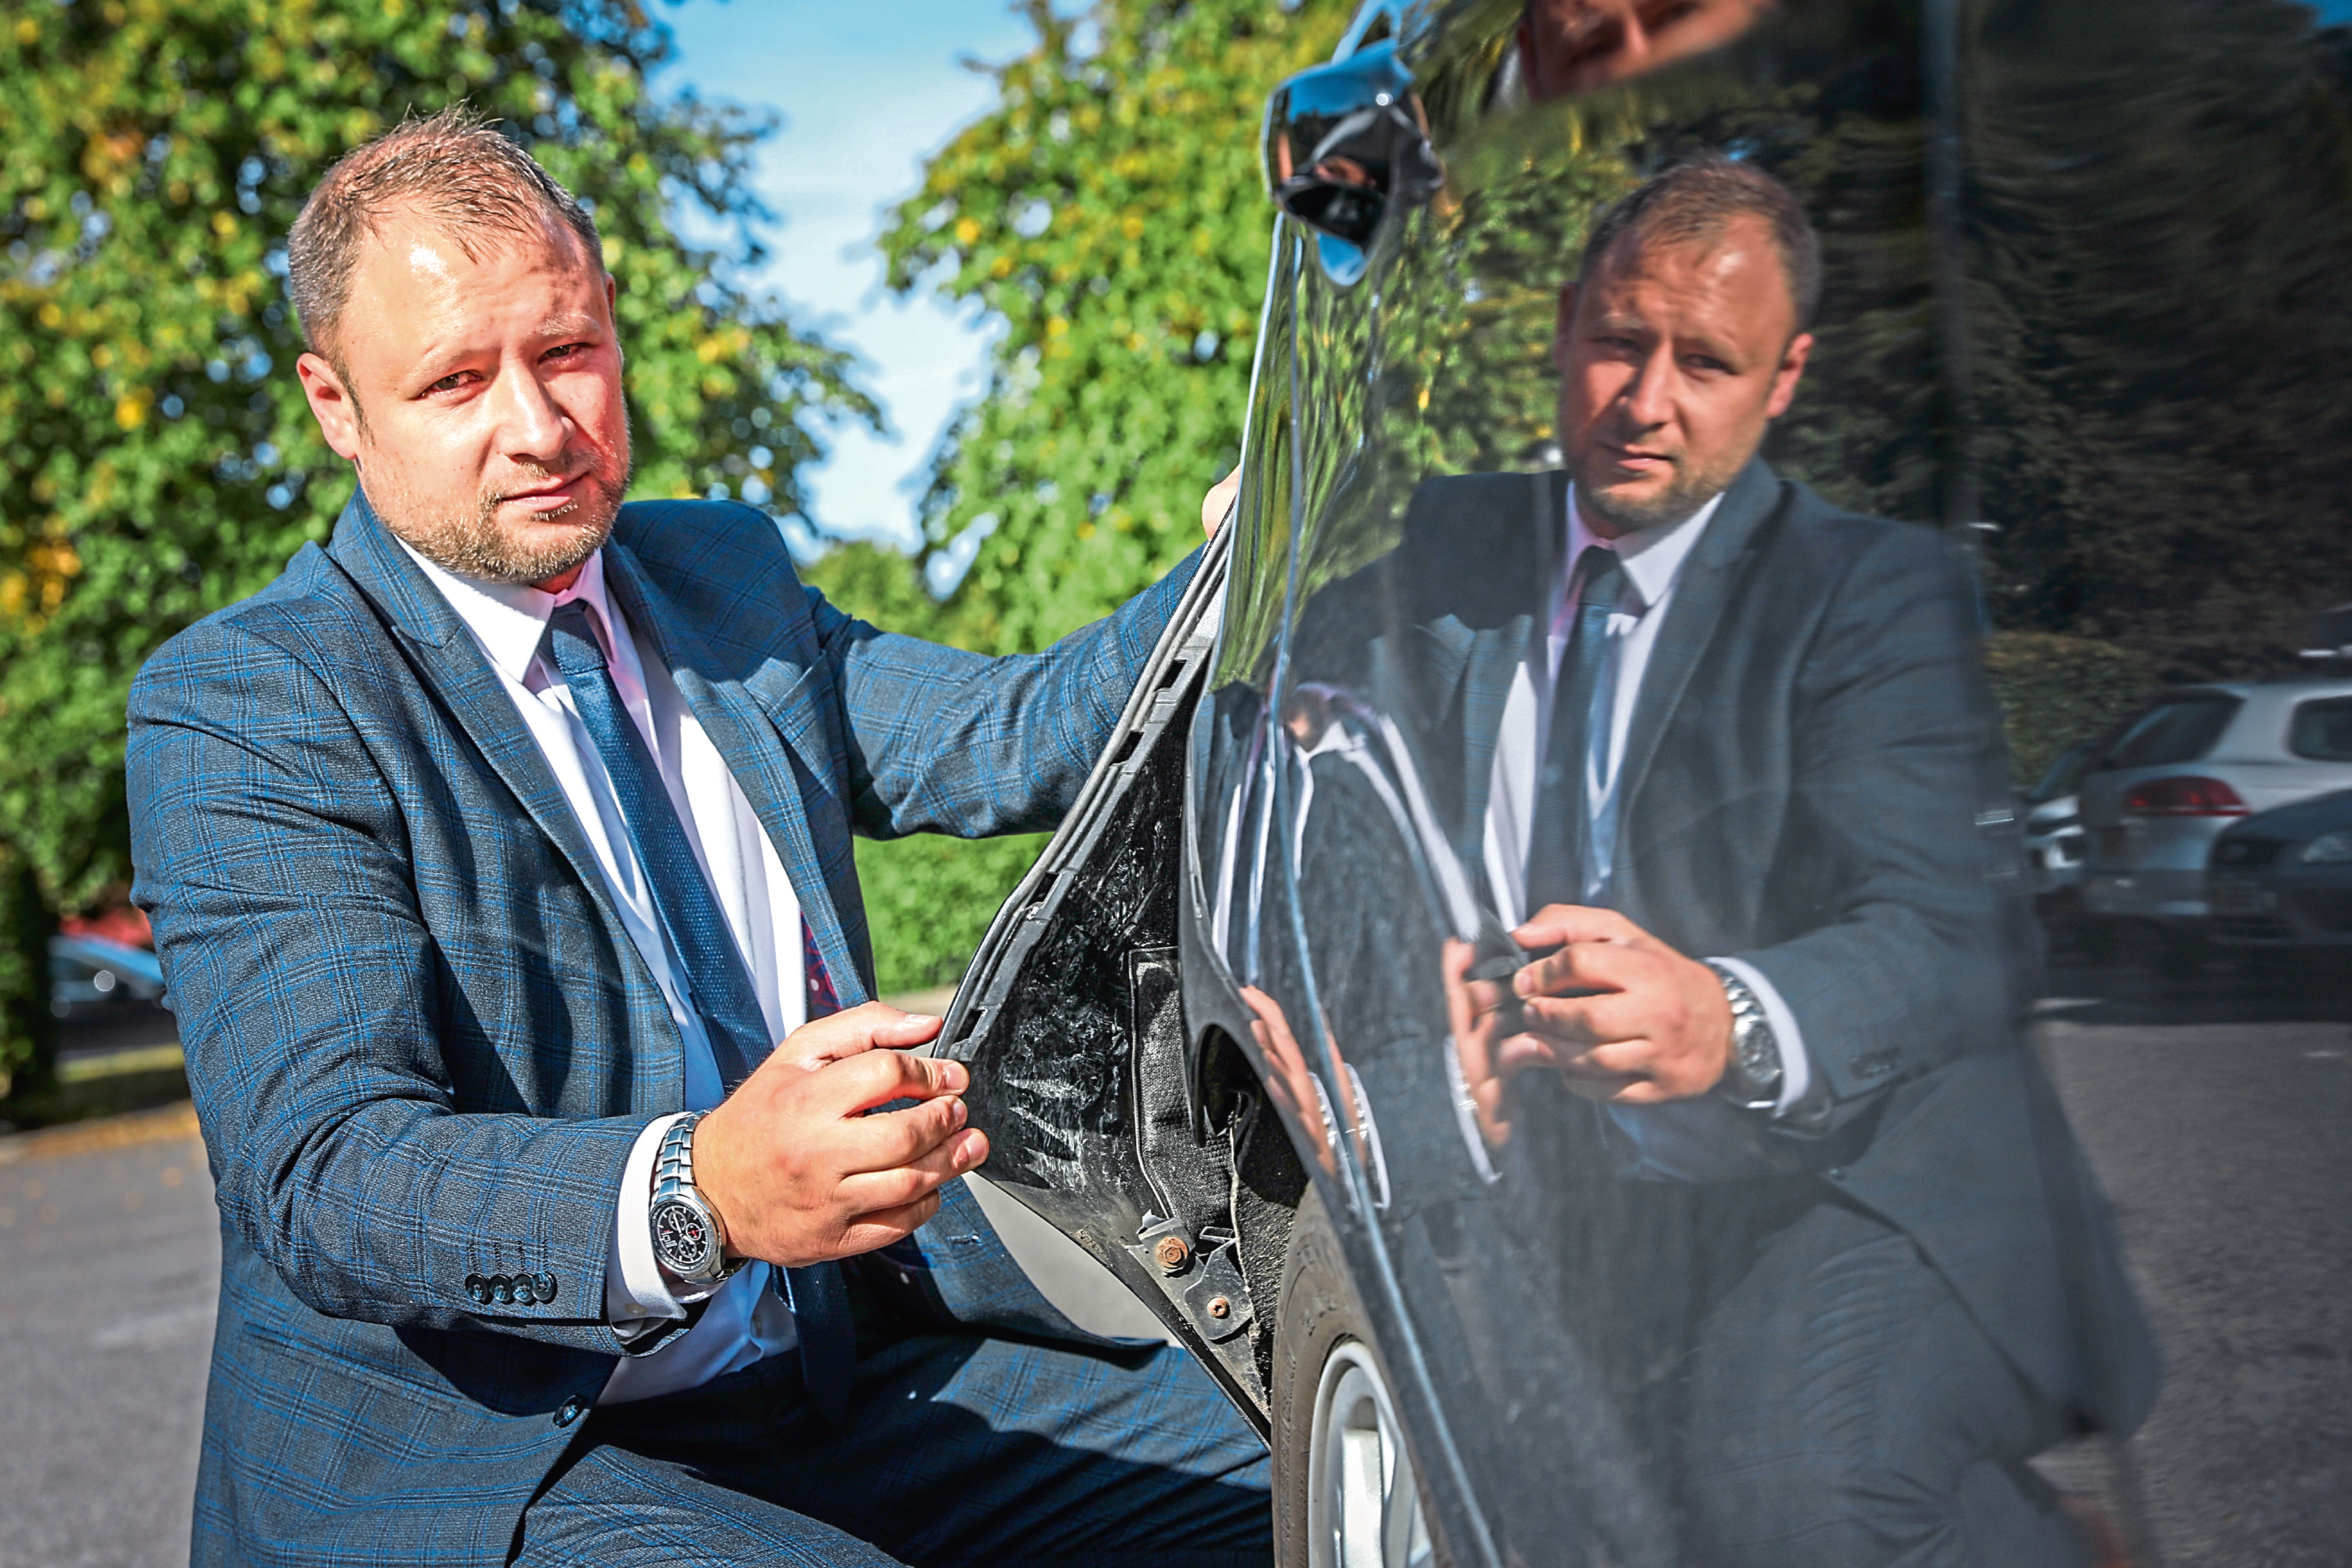 The Evening Telegraph, CR0014241, News, Greg Flucker story, David Dalgarno's car was badly damaged on a street in Carnoustie. Picture shows; David Dalgarno with his damaged car. Monday 16th September, 2019. Mhairi Edwards/DCT Media